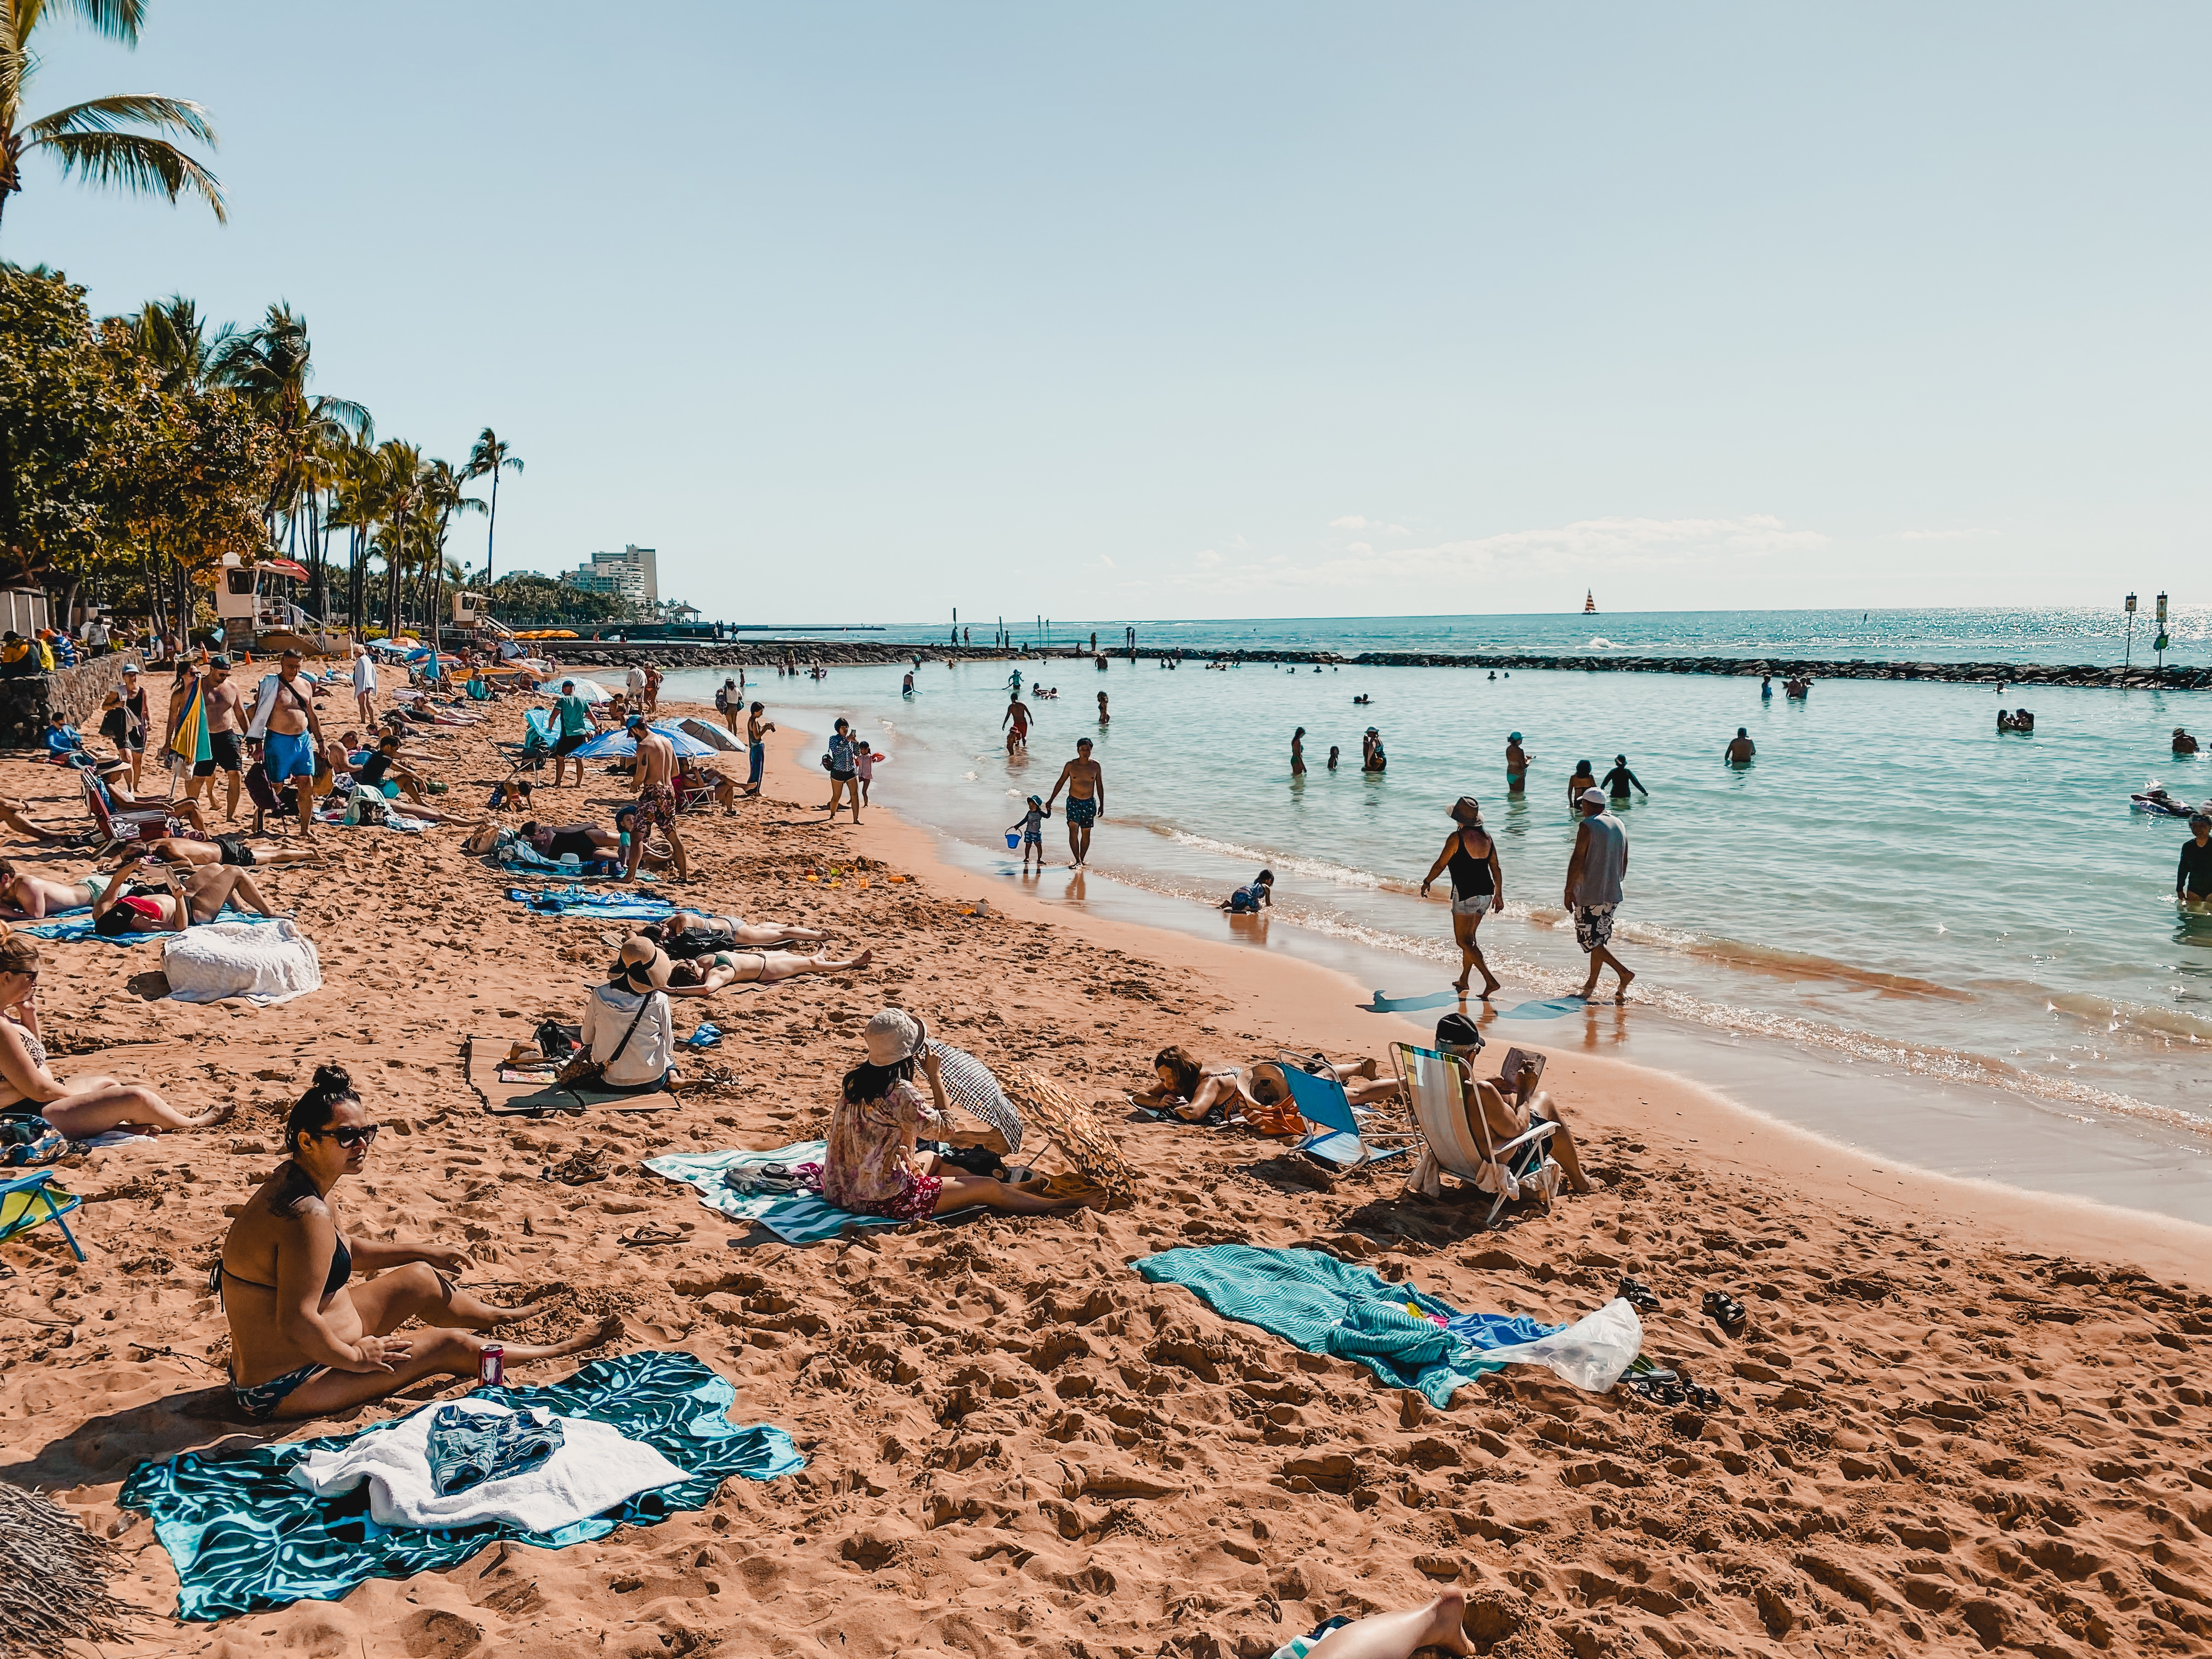 people enjoying the sun at Waikiki beach